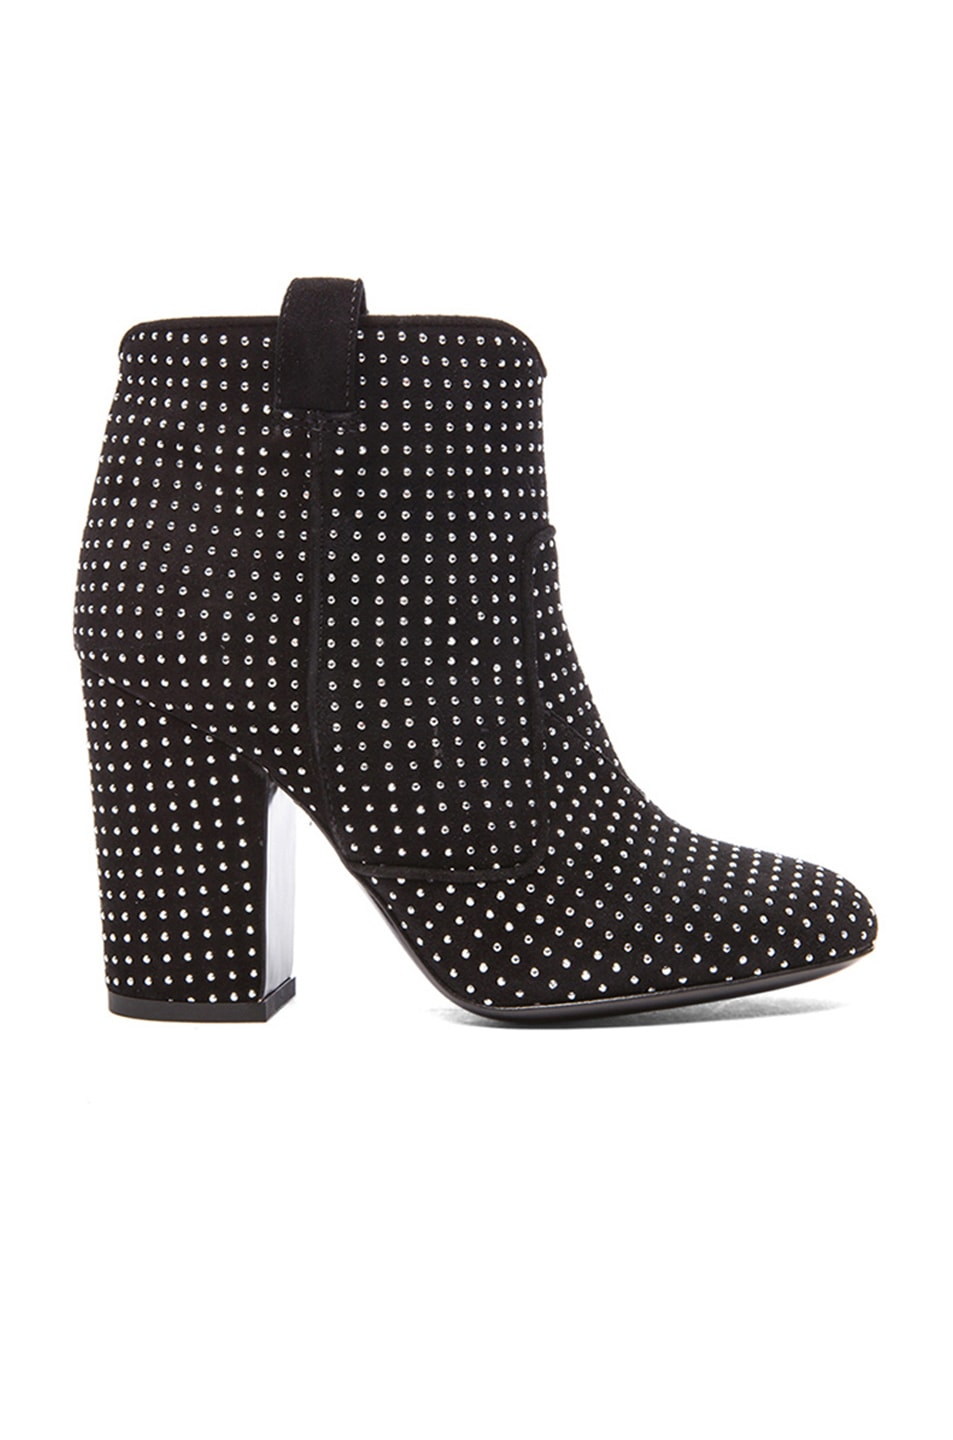 Image 1 of Laurence Dacade Pete Suede Studded Booties in Black & Silver